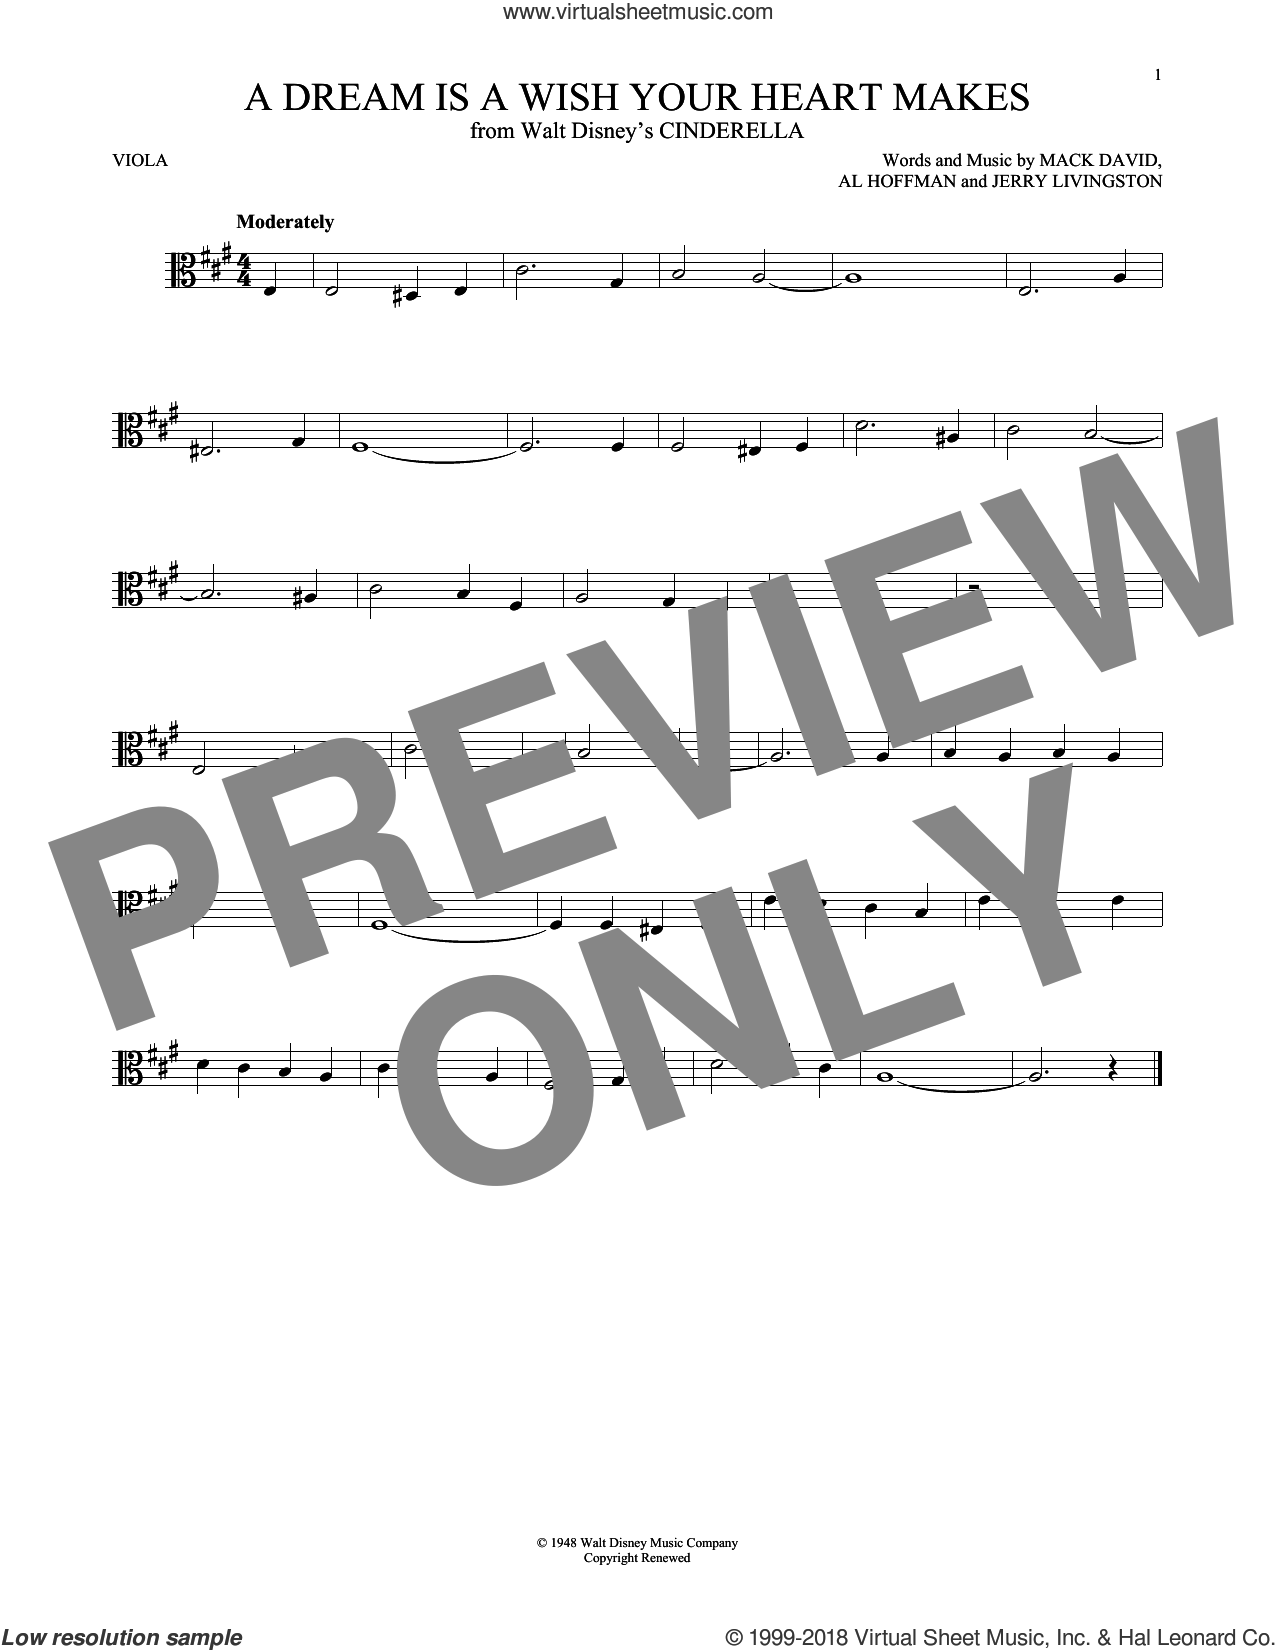 A Dream Is A Wish Your Heart Makes sheet music for viola solo by Al Hoffman, Linda Ronstadt, Jerry Livingston, Mack David and Mack David, Al Hoffman and Jerry Livingston, intermediate skill level